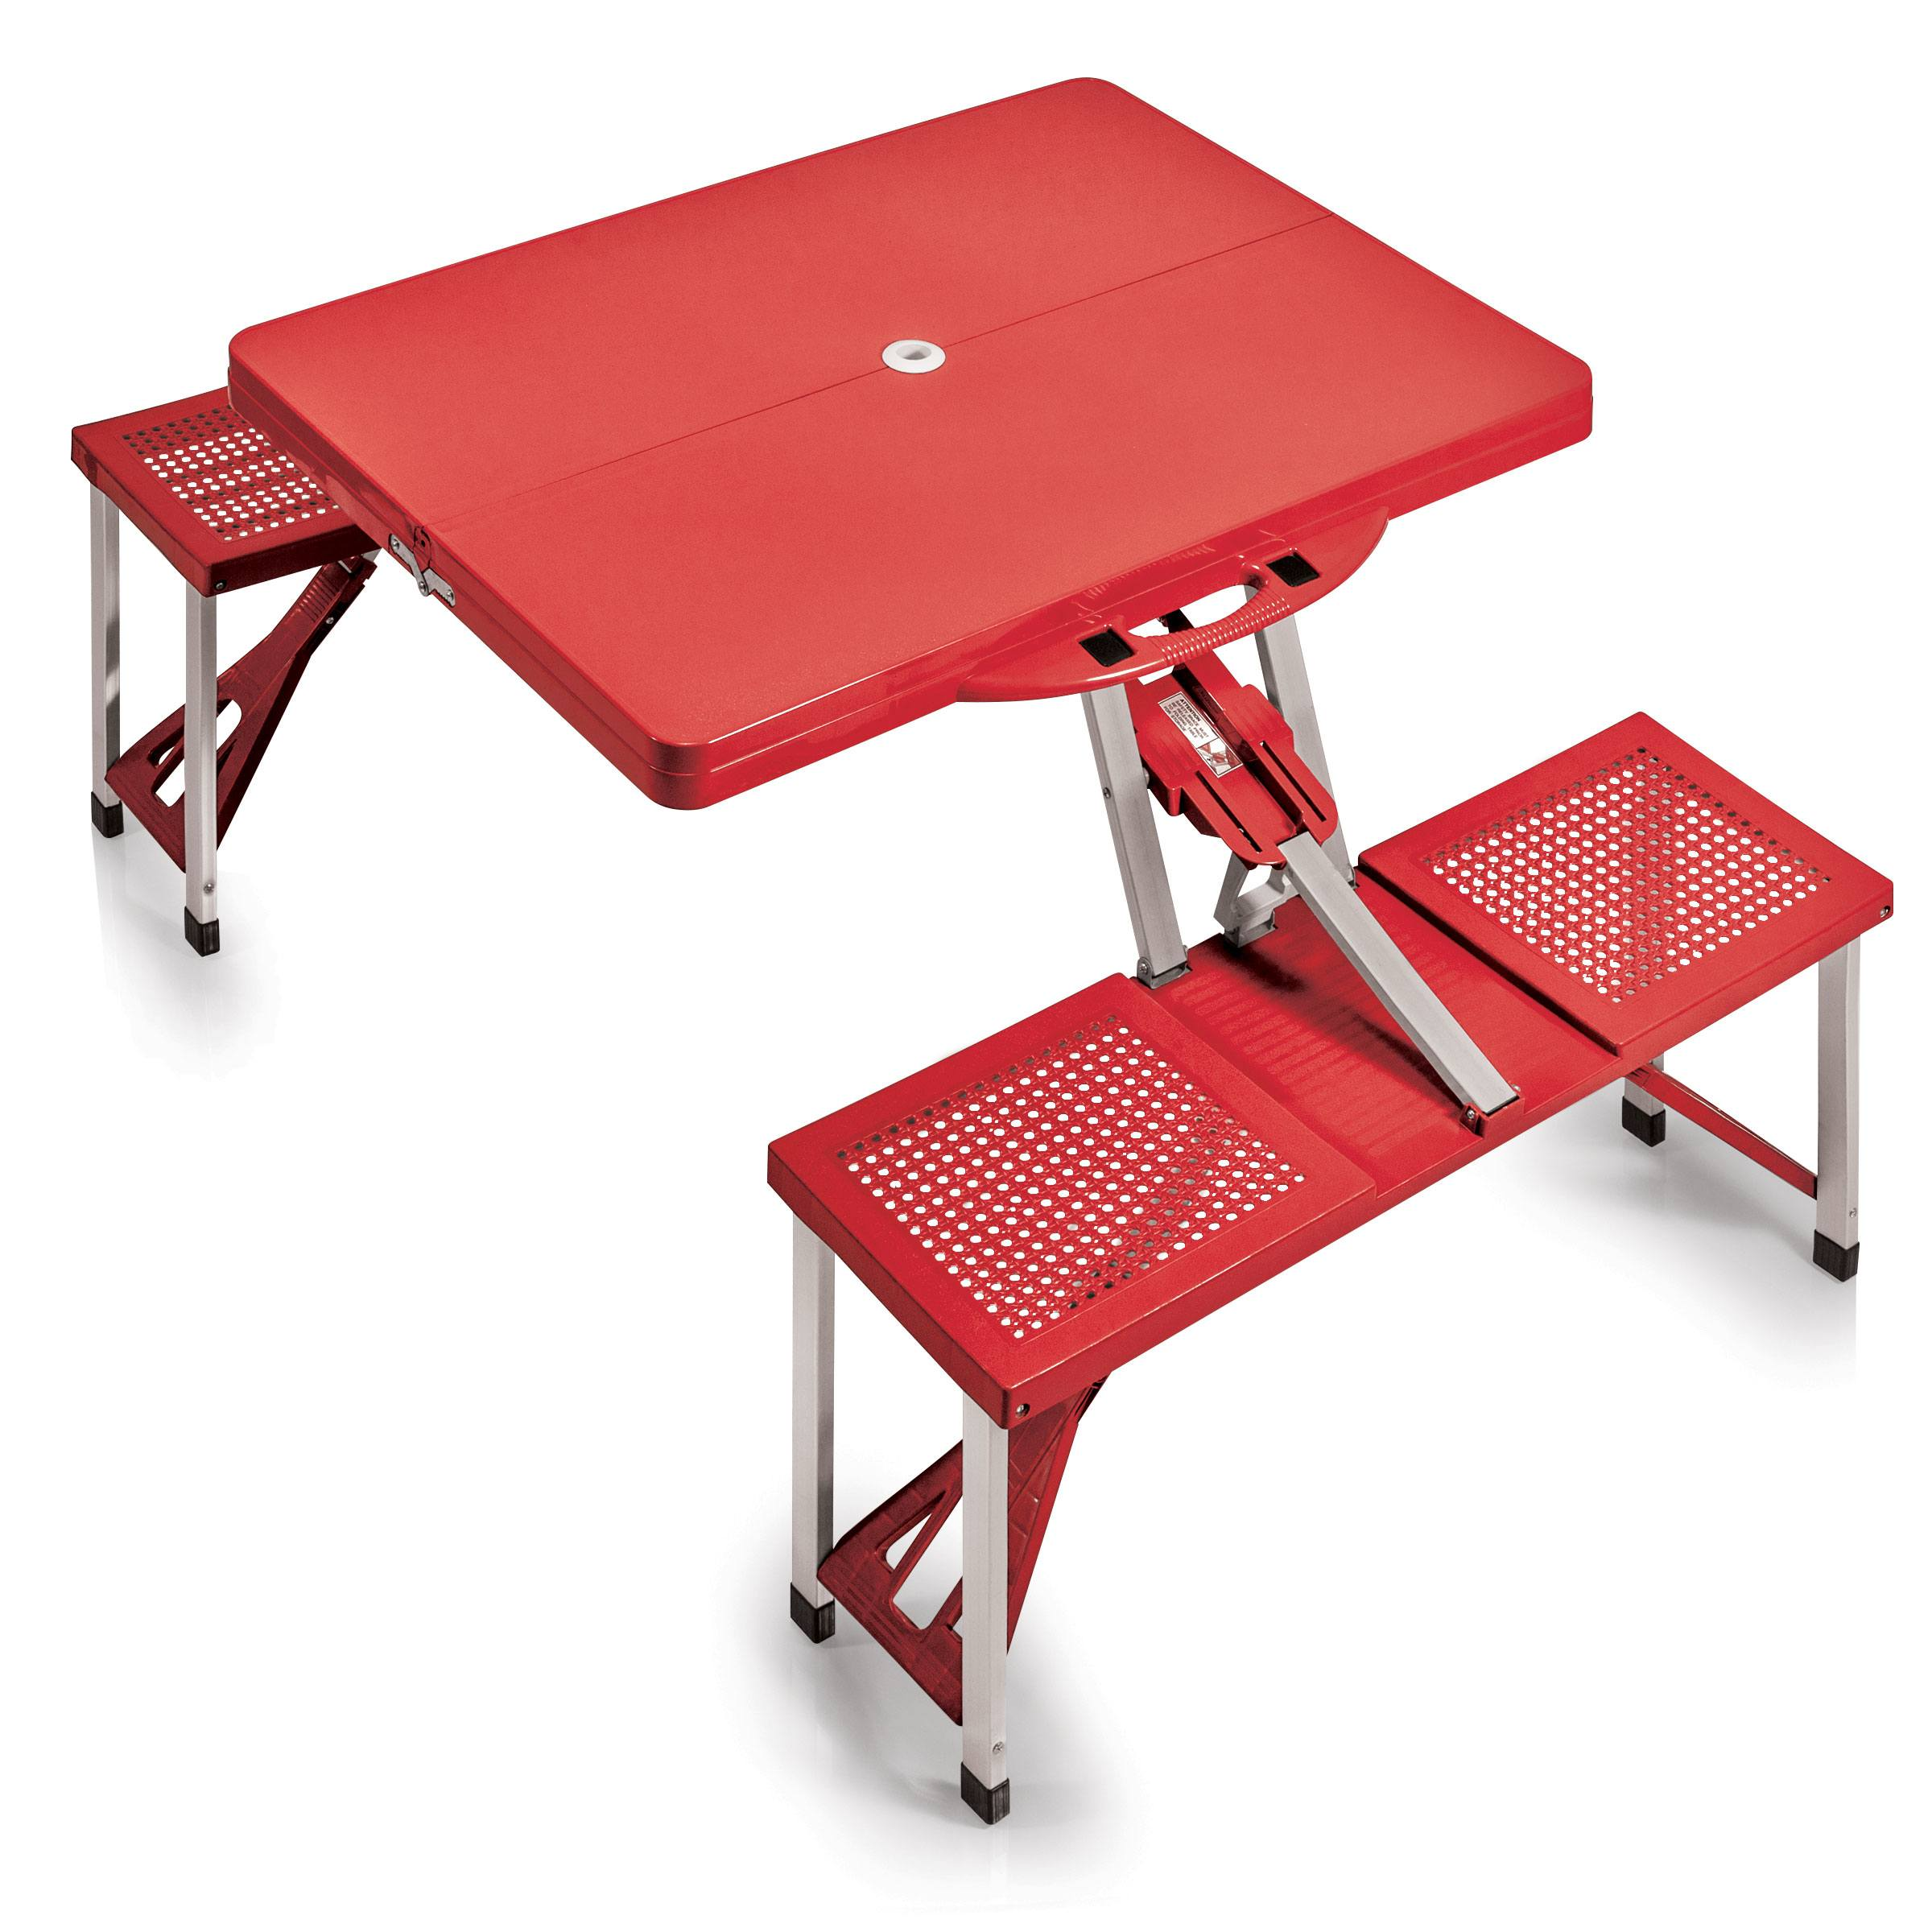 Picnic Table Portable Table And Seats Red